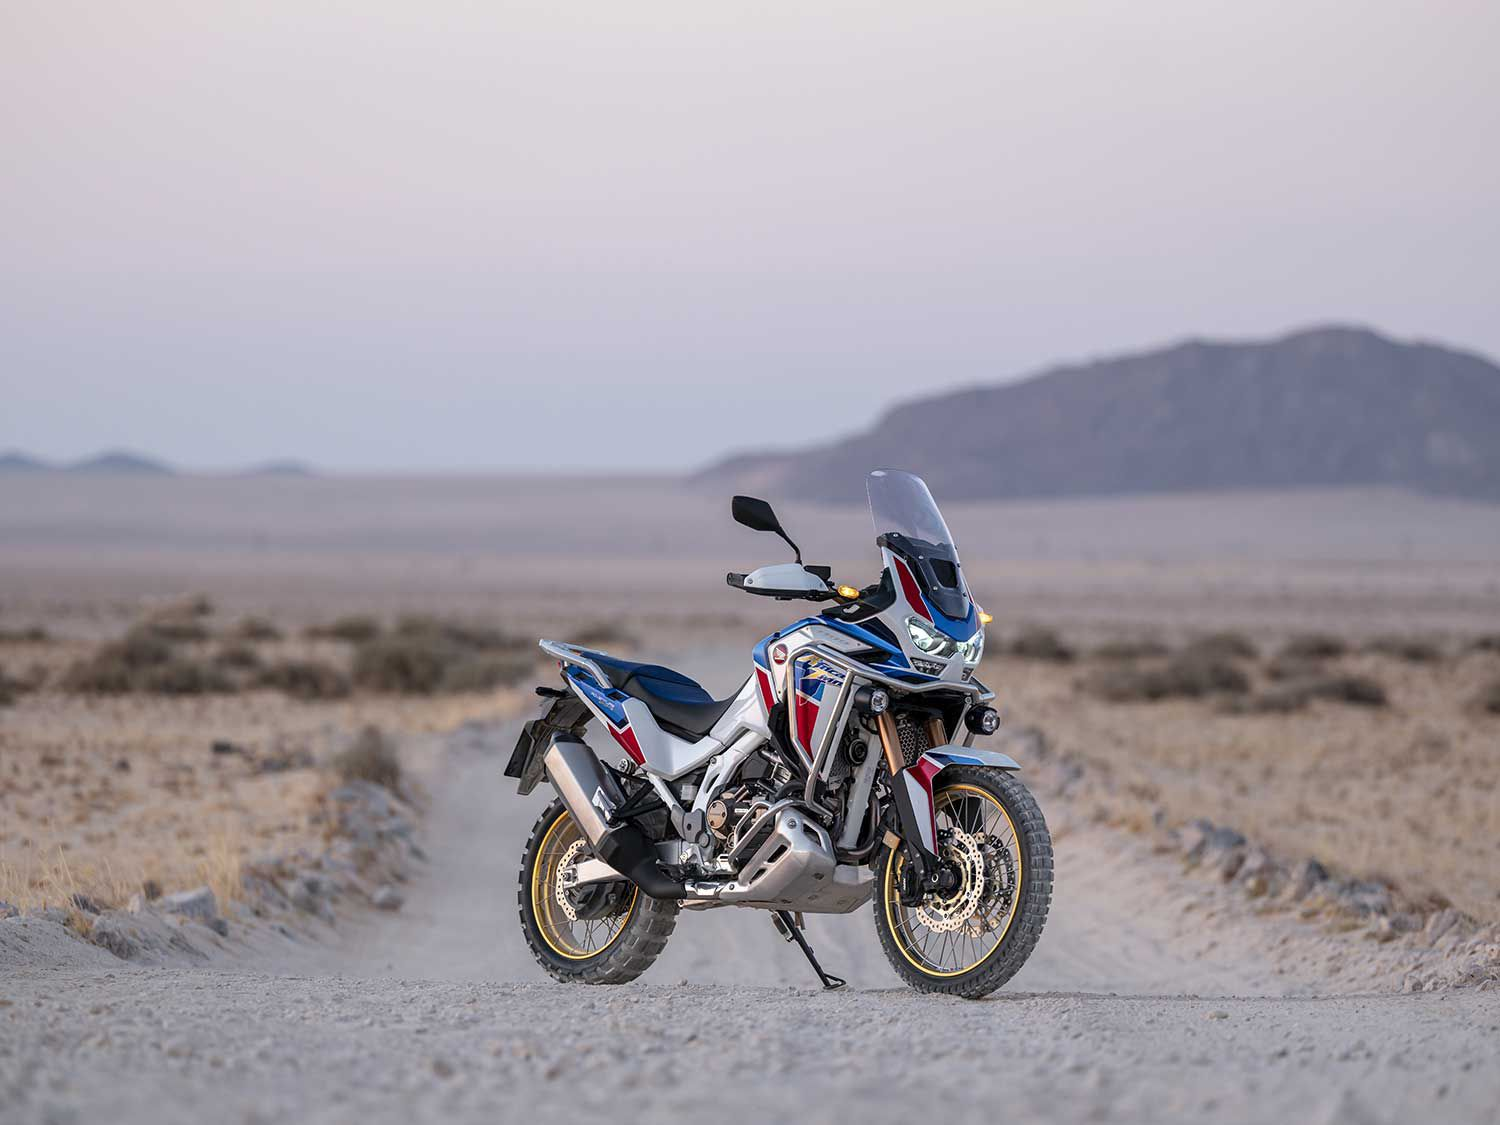 Evoking the purposeful style and stance of the Dakar Rally bikes, Honda's Africa Twin Adventure Sports ES leads visually with its big 21-inch front wheel and tall fairing and windshield.